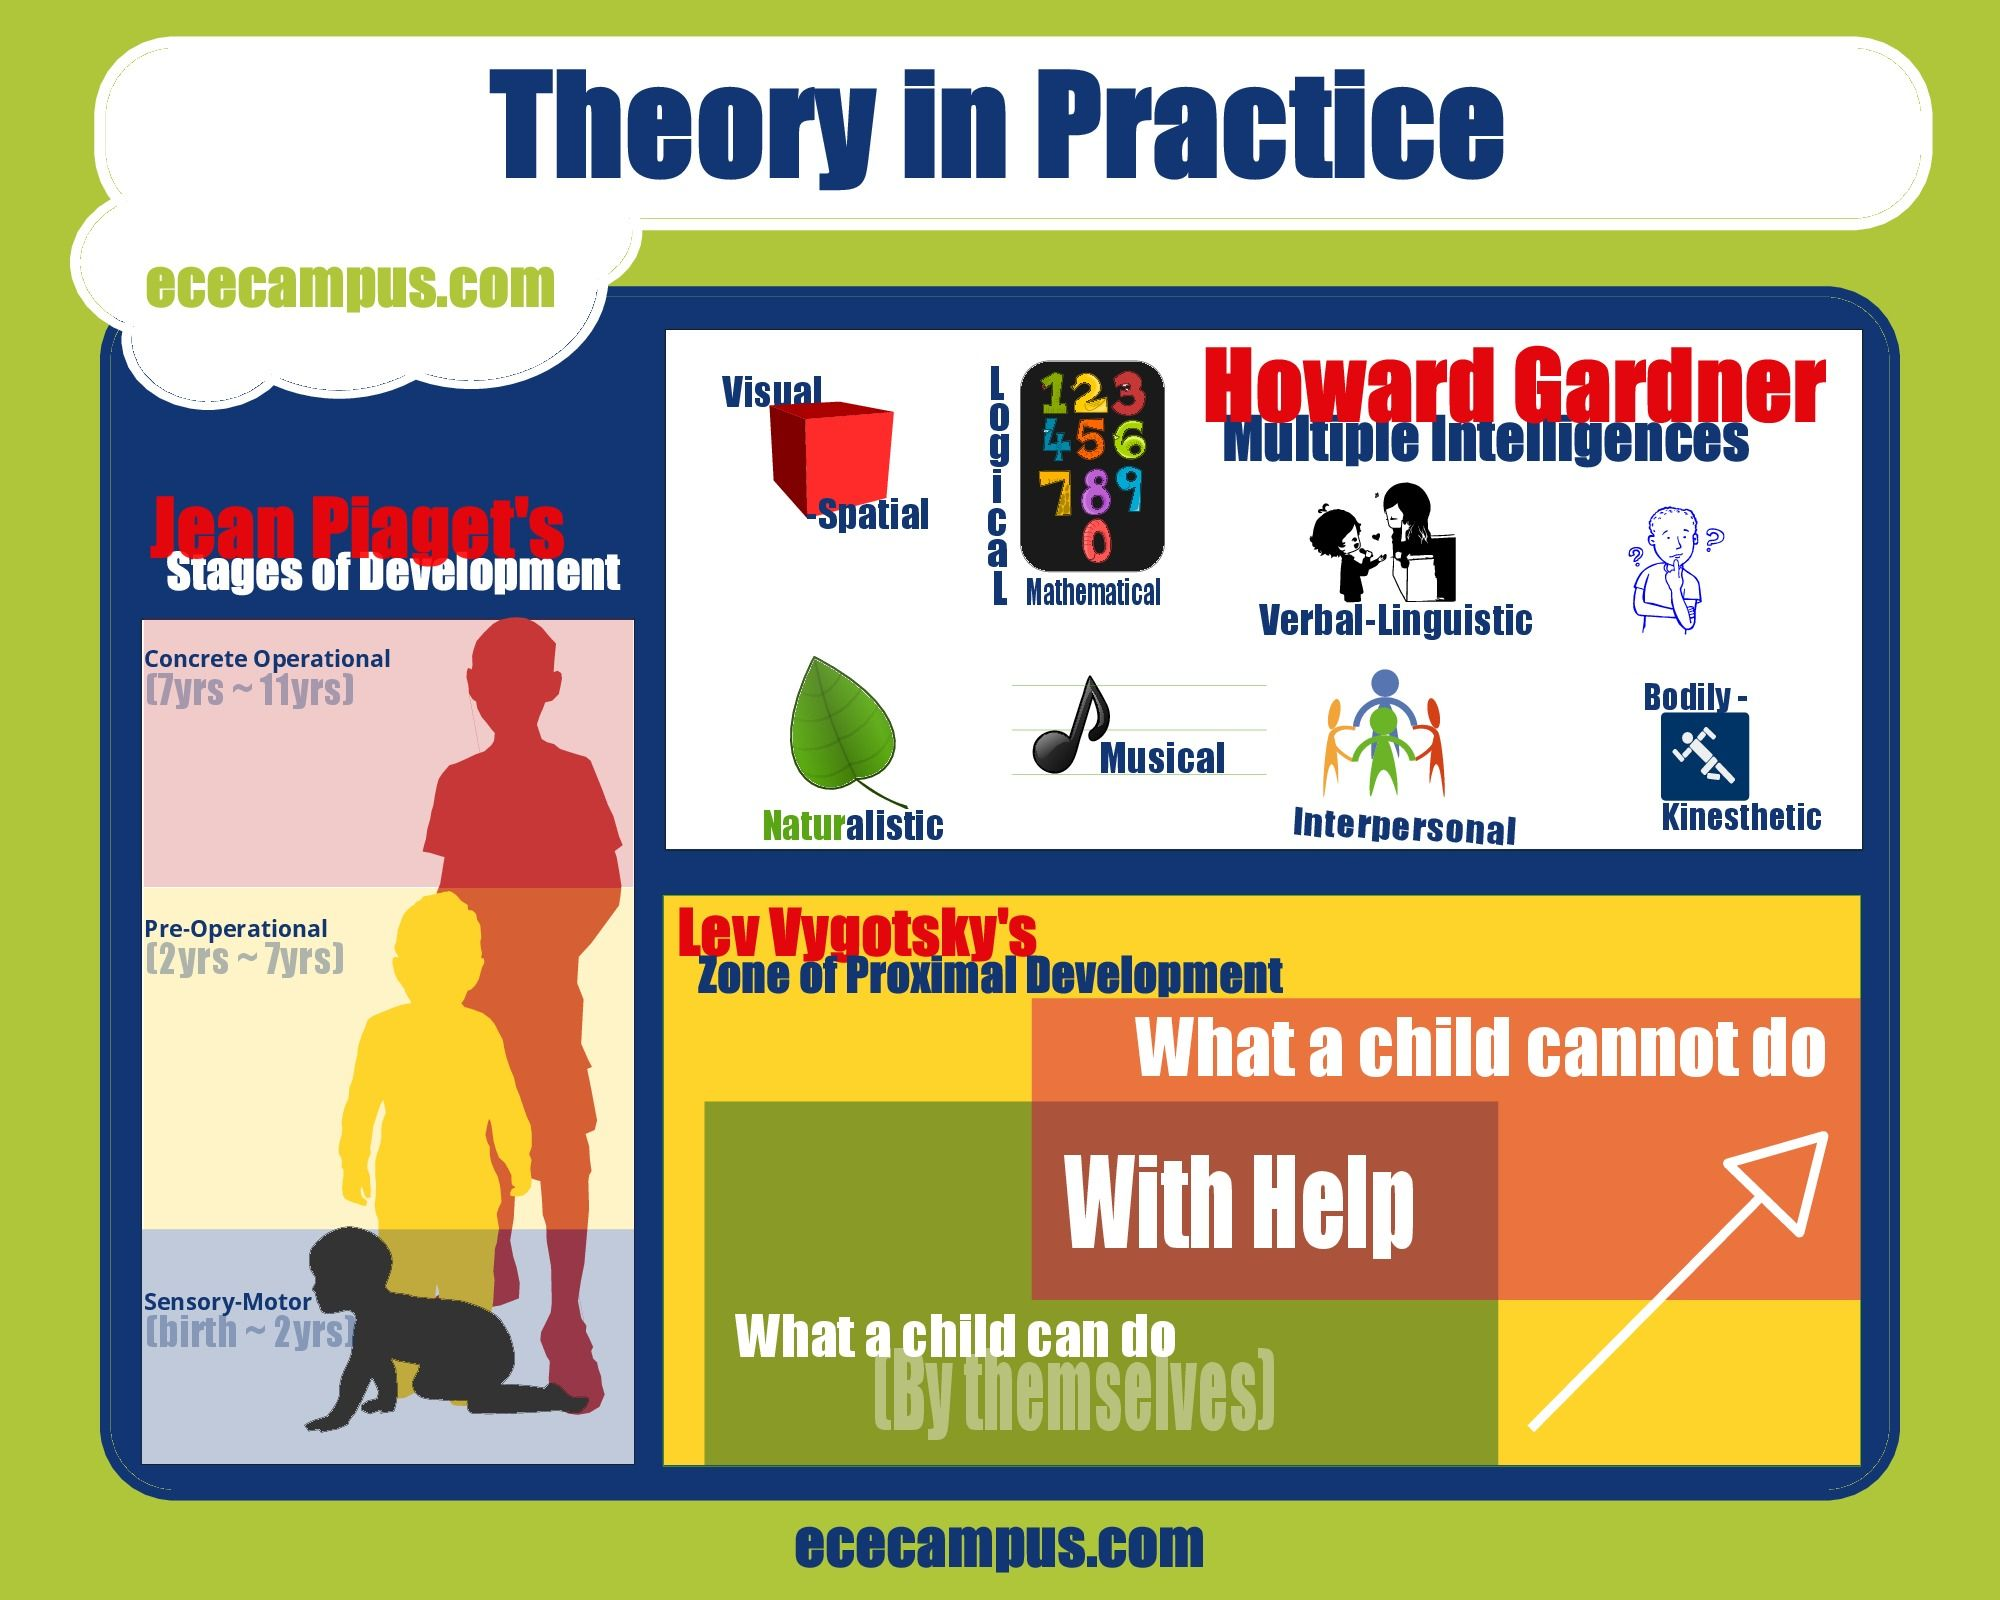 Our Theory And Practice Poster Illustrates Some Key